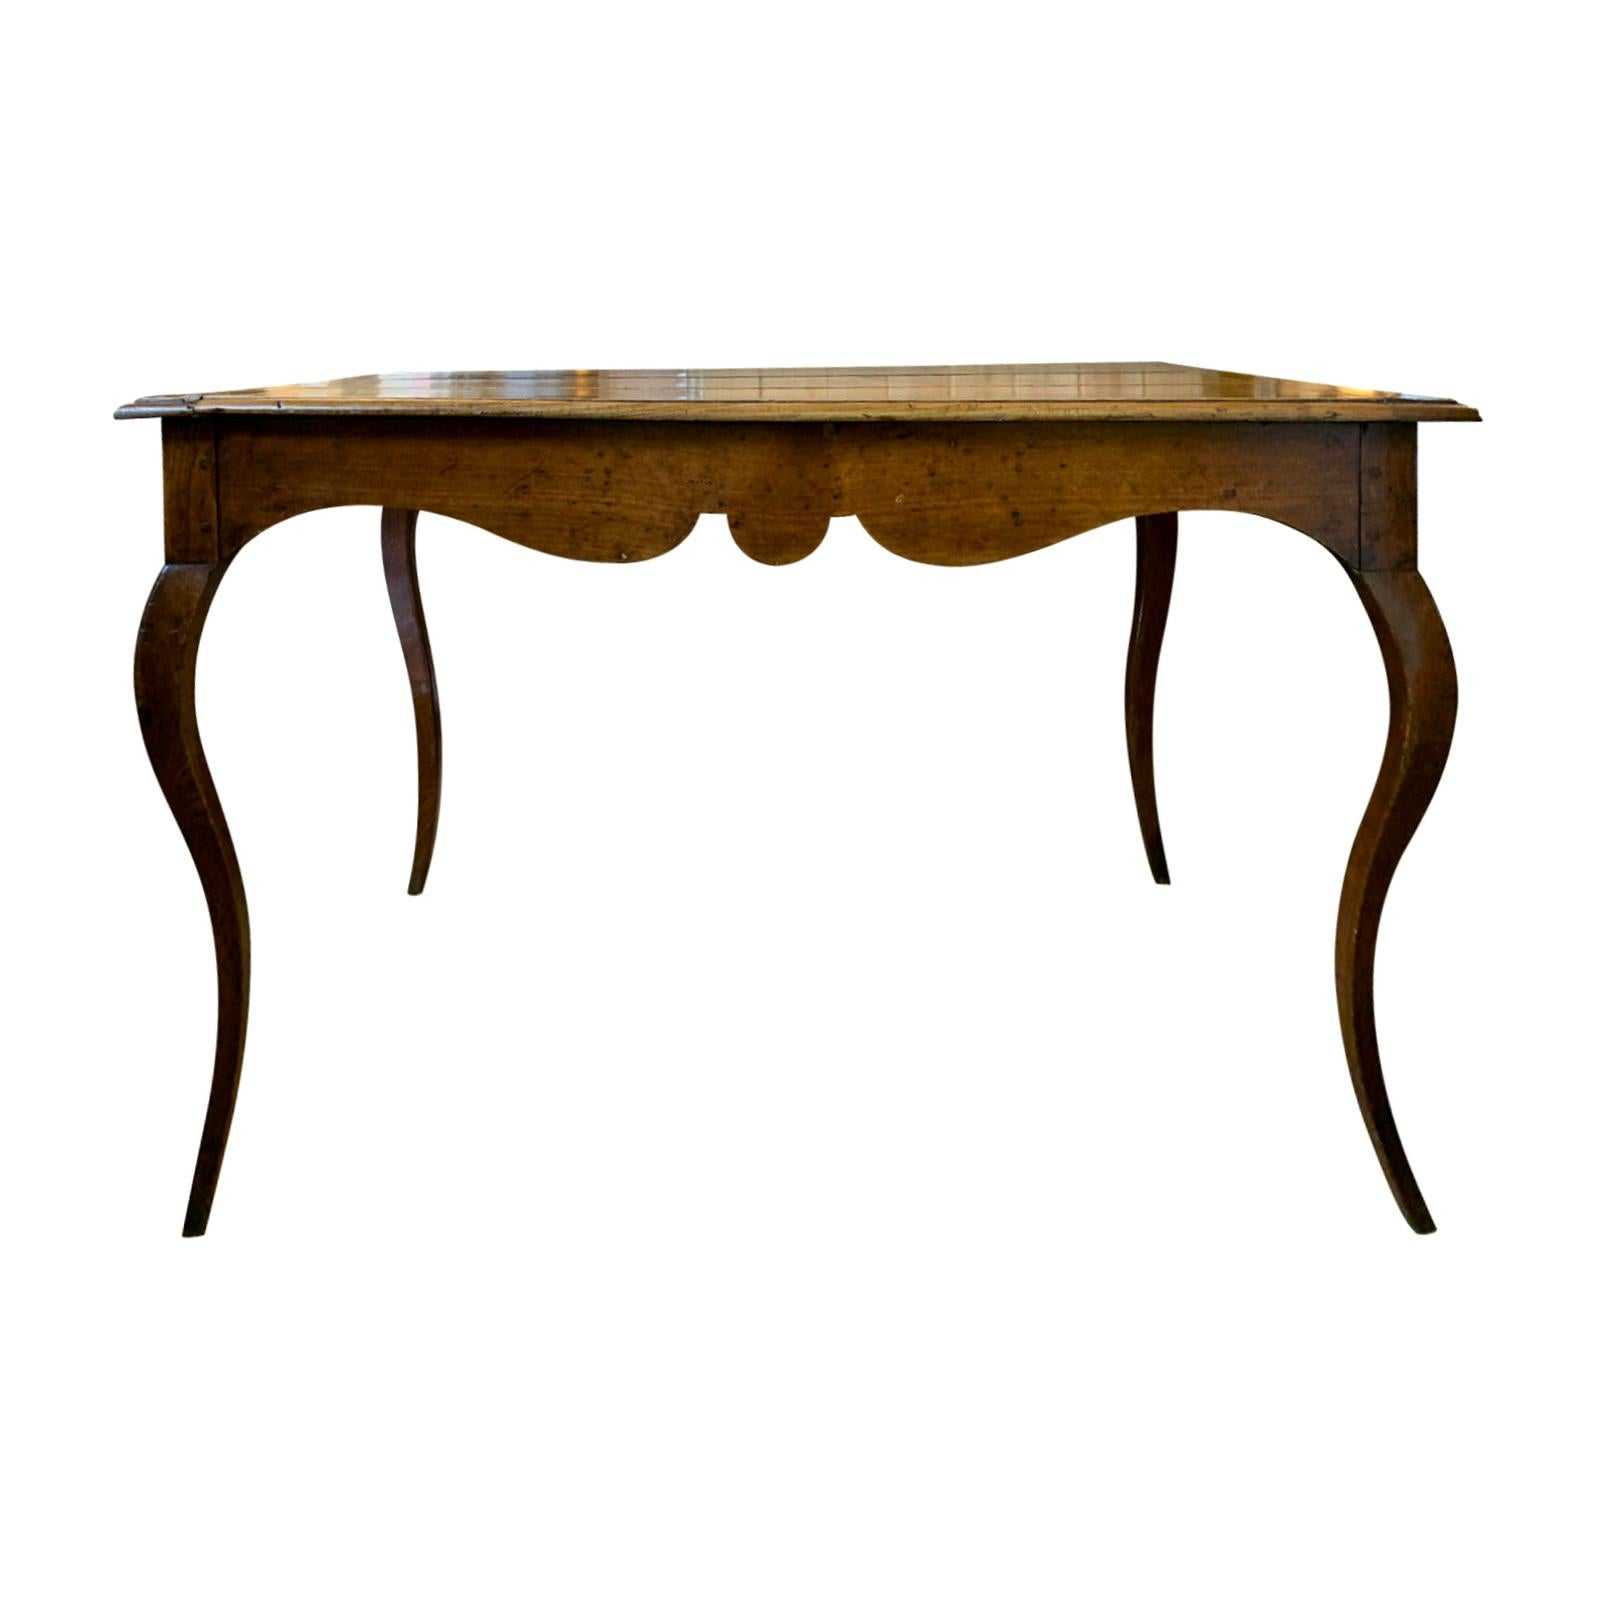 19th Century French Side Table with Scalloped Apron, Cabriole Legs